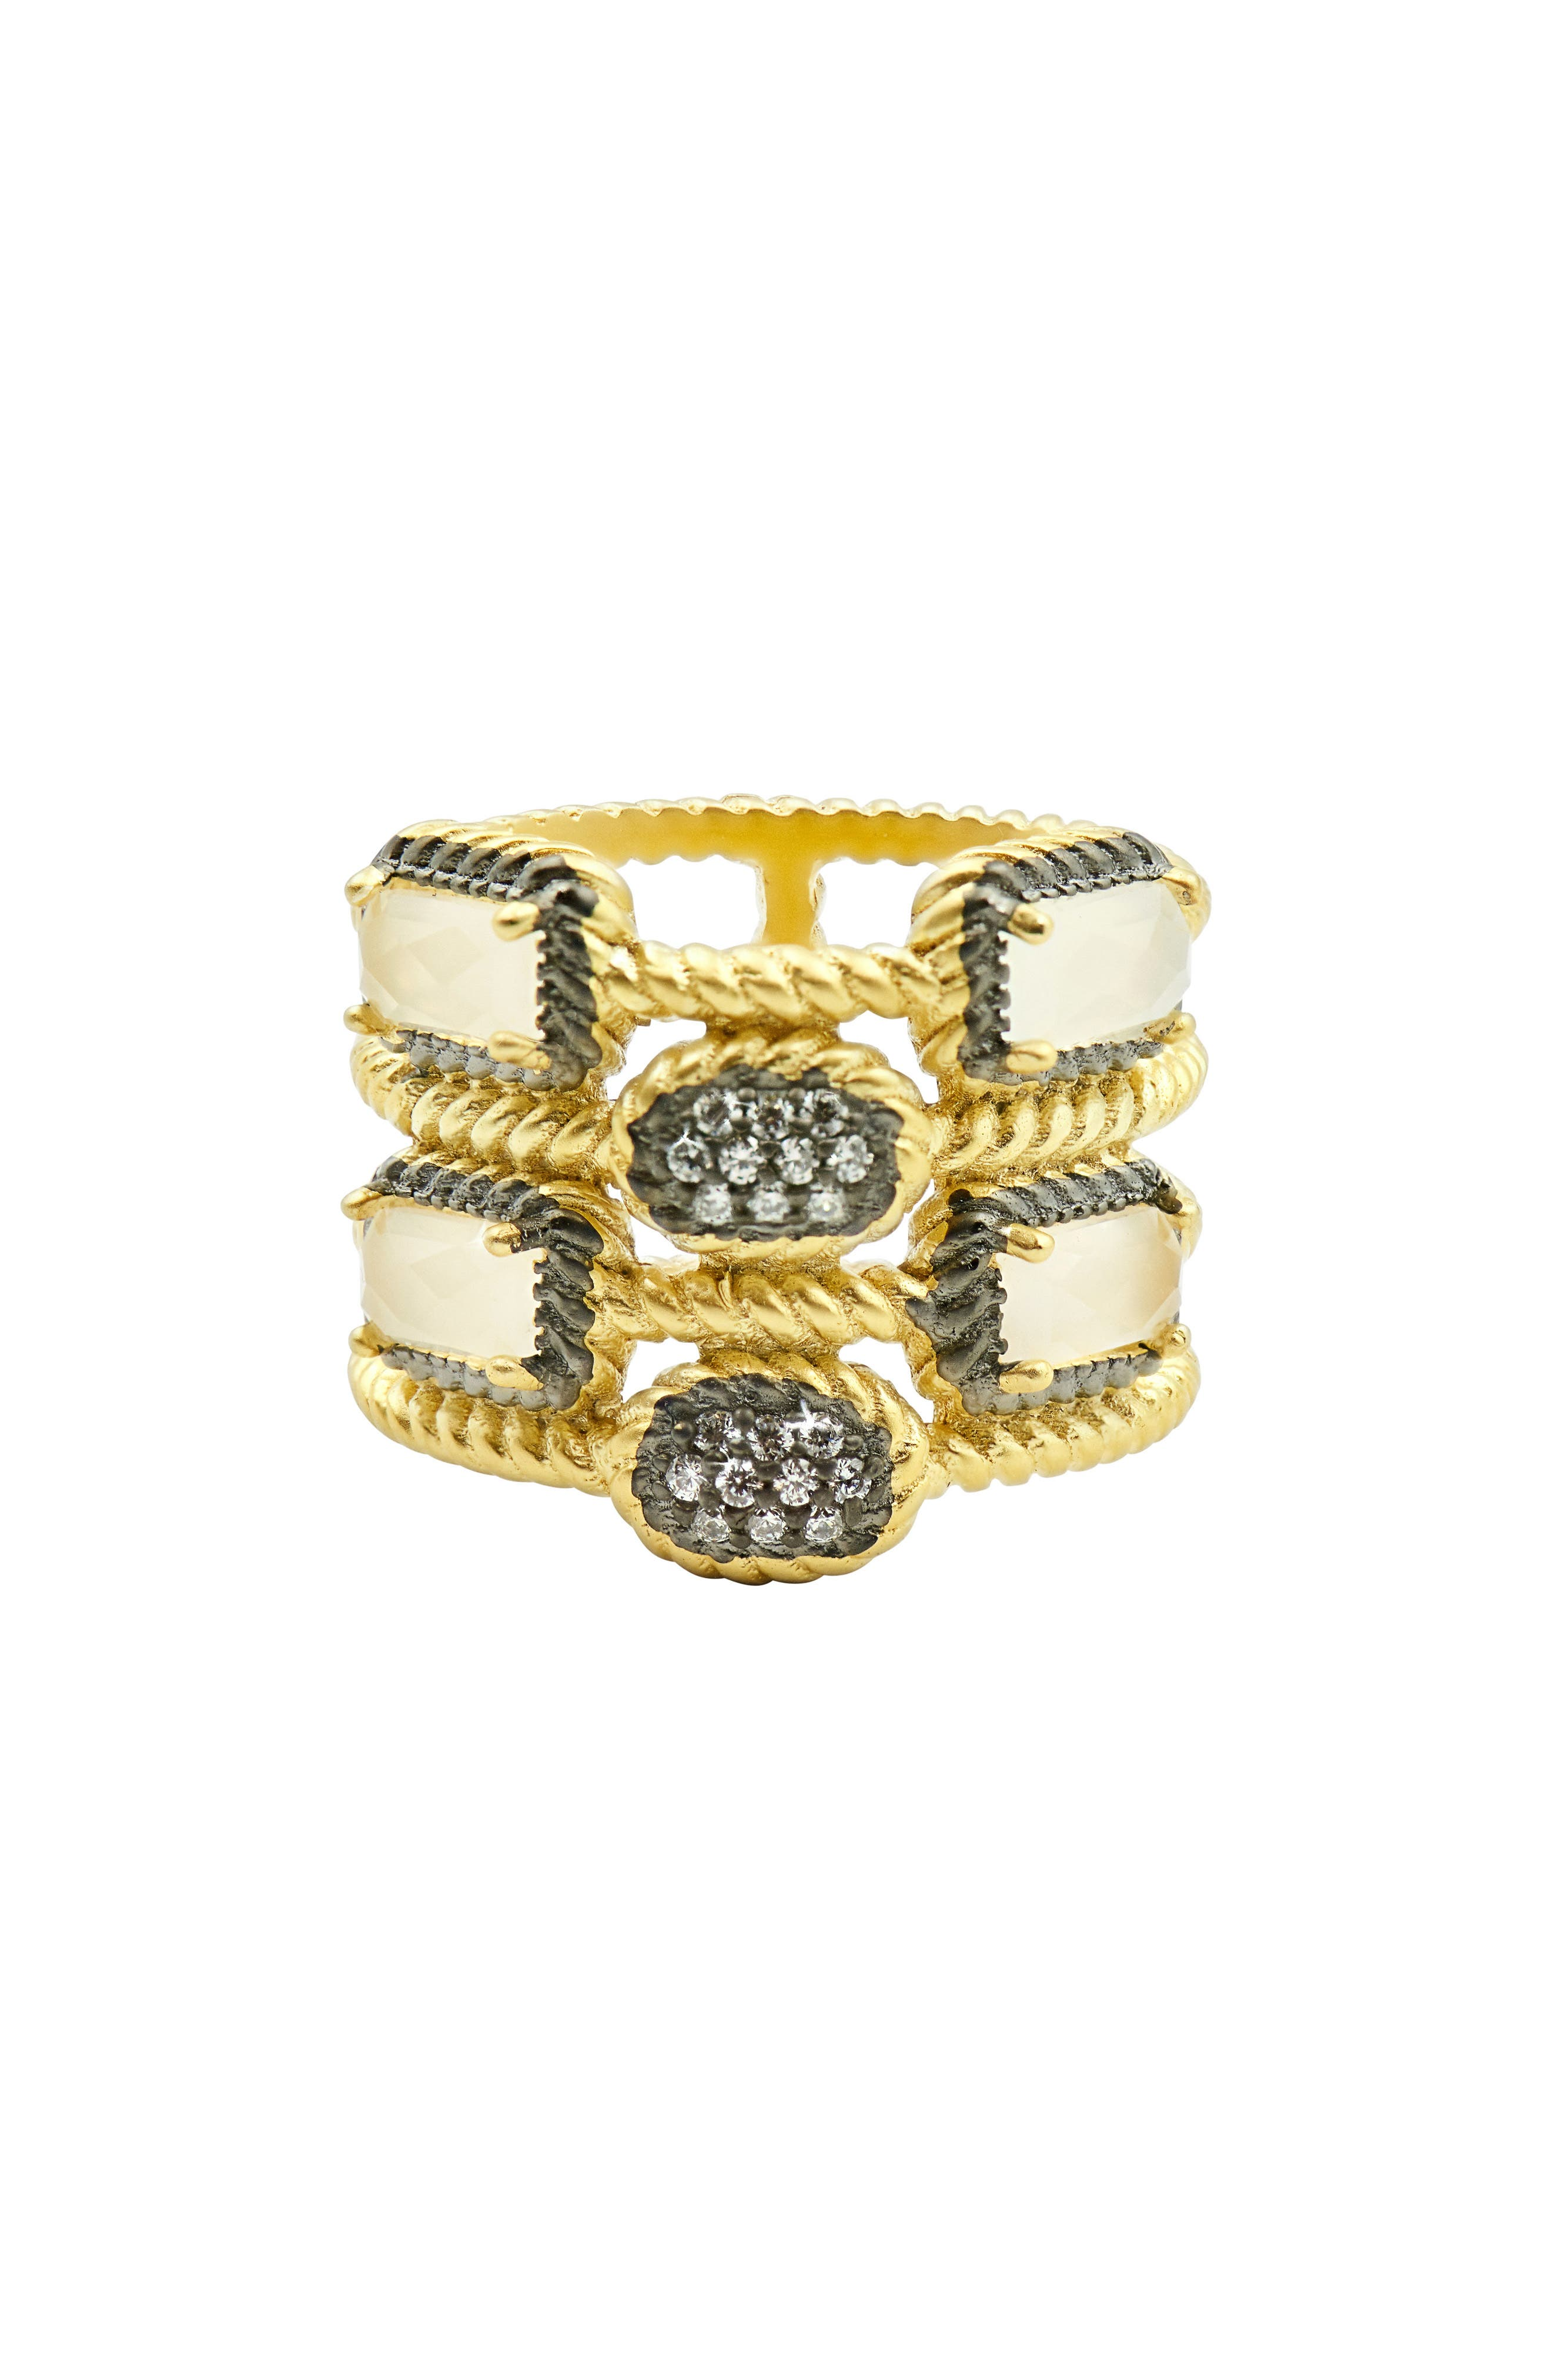 FREIDA ROTHMAN Gilded Cable Stone & Pavé Cage Ring